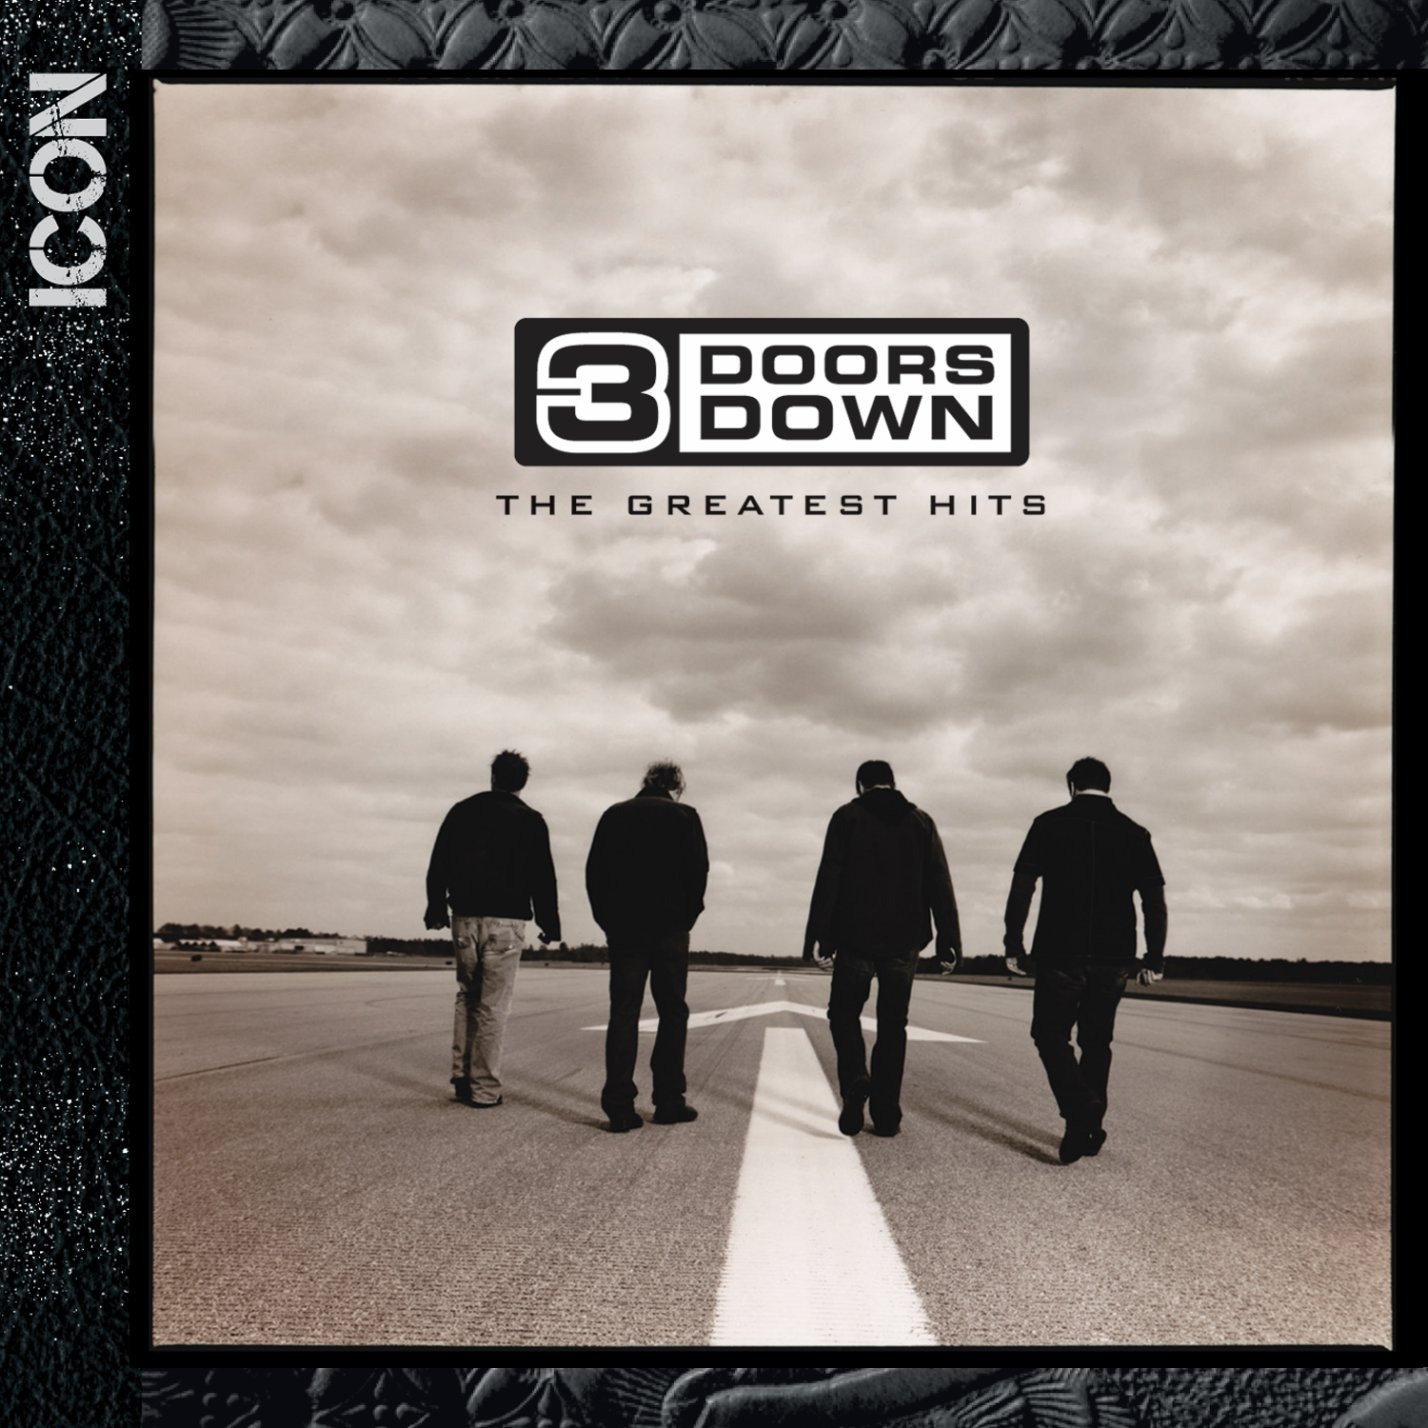 3 Doors Down ICON The Greatest Hits Amazon Music